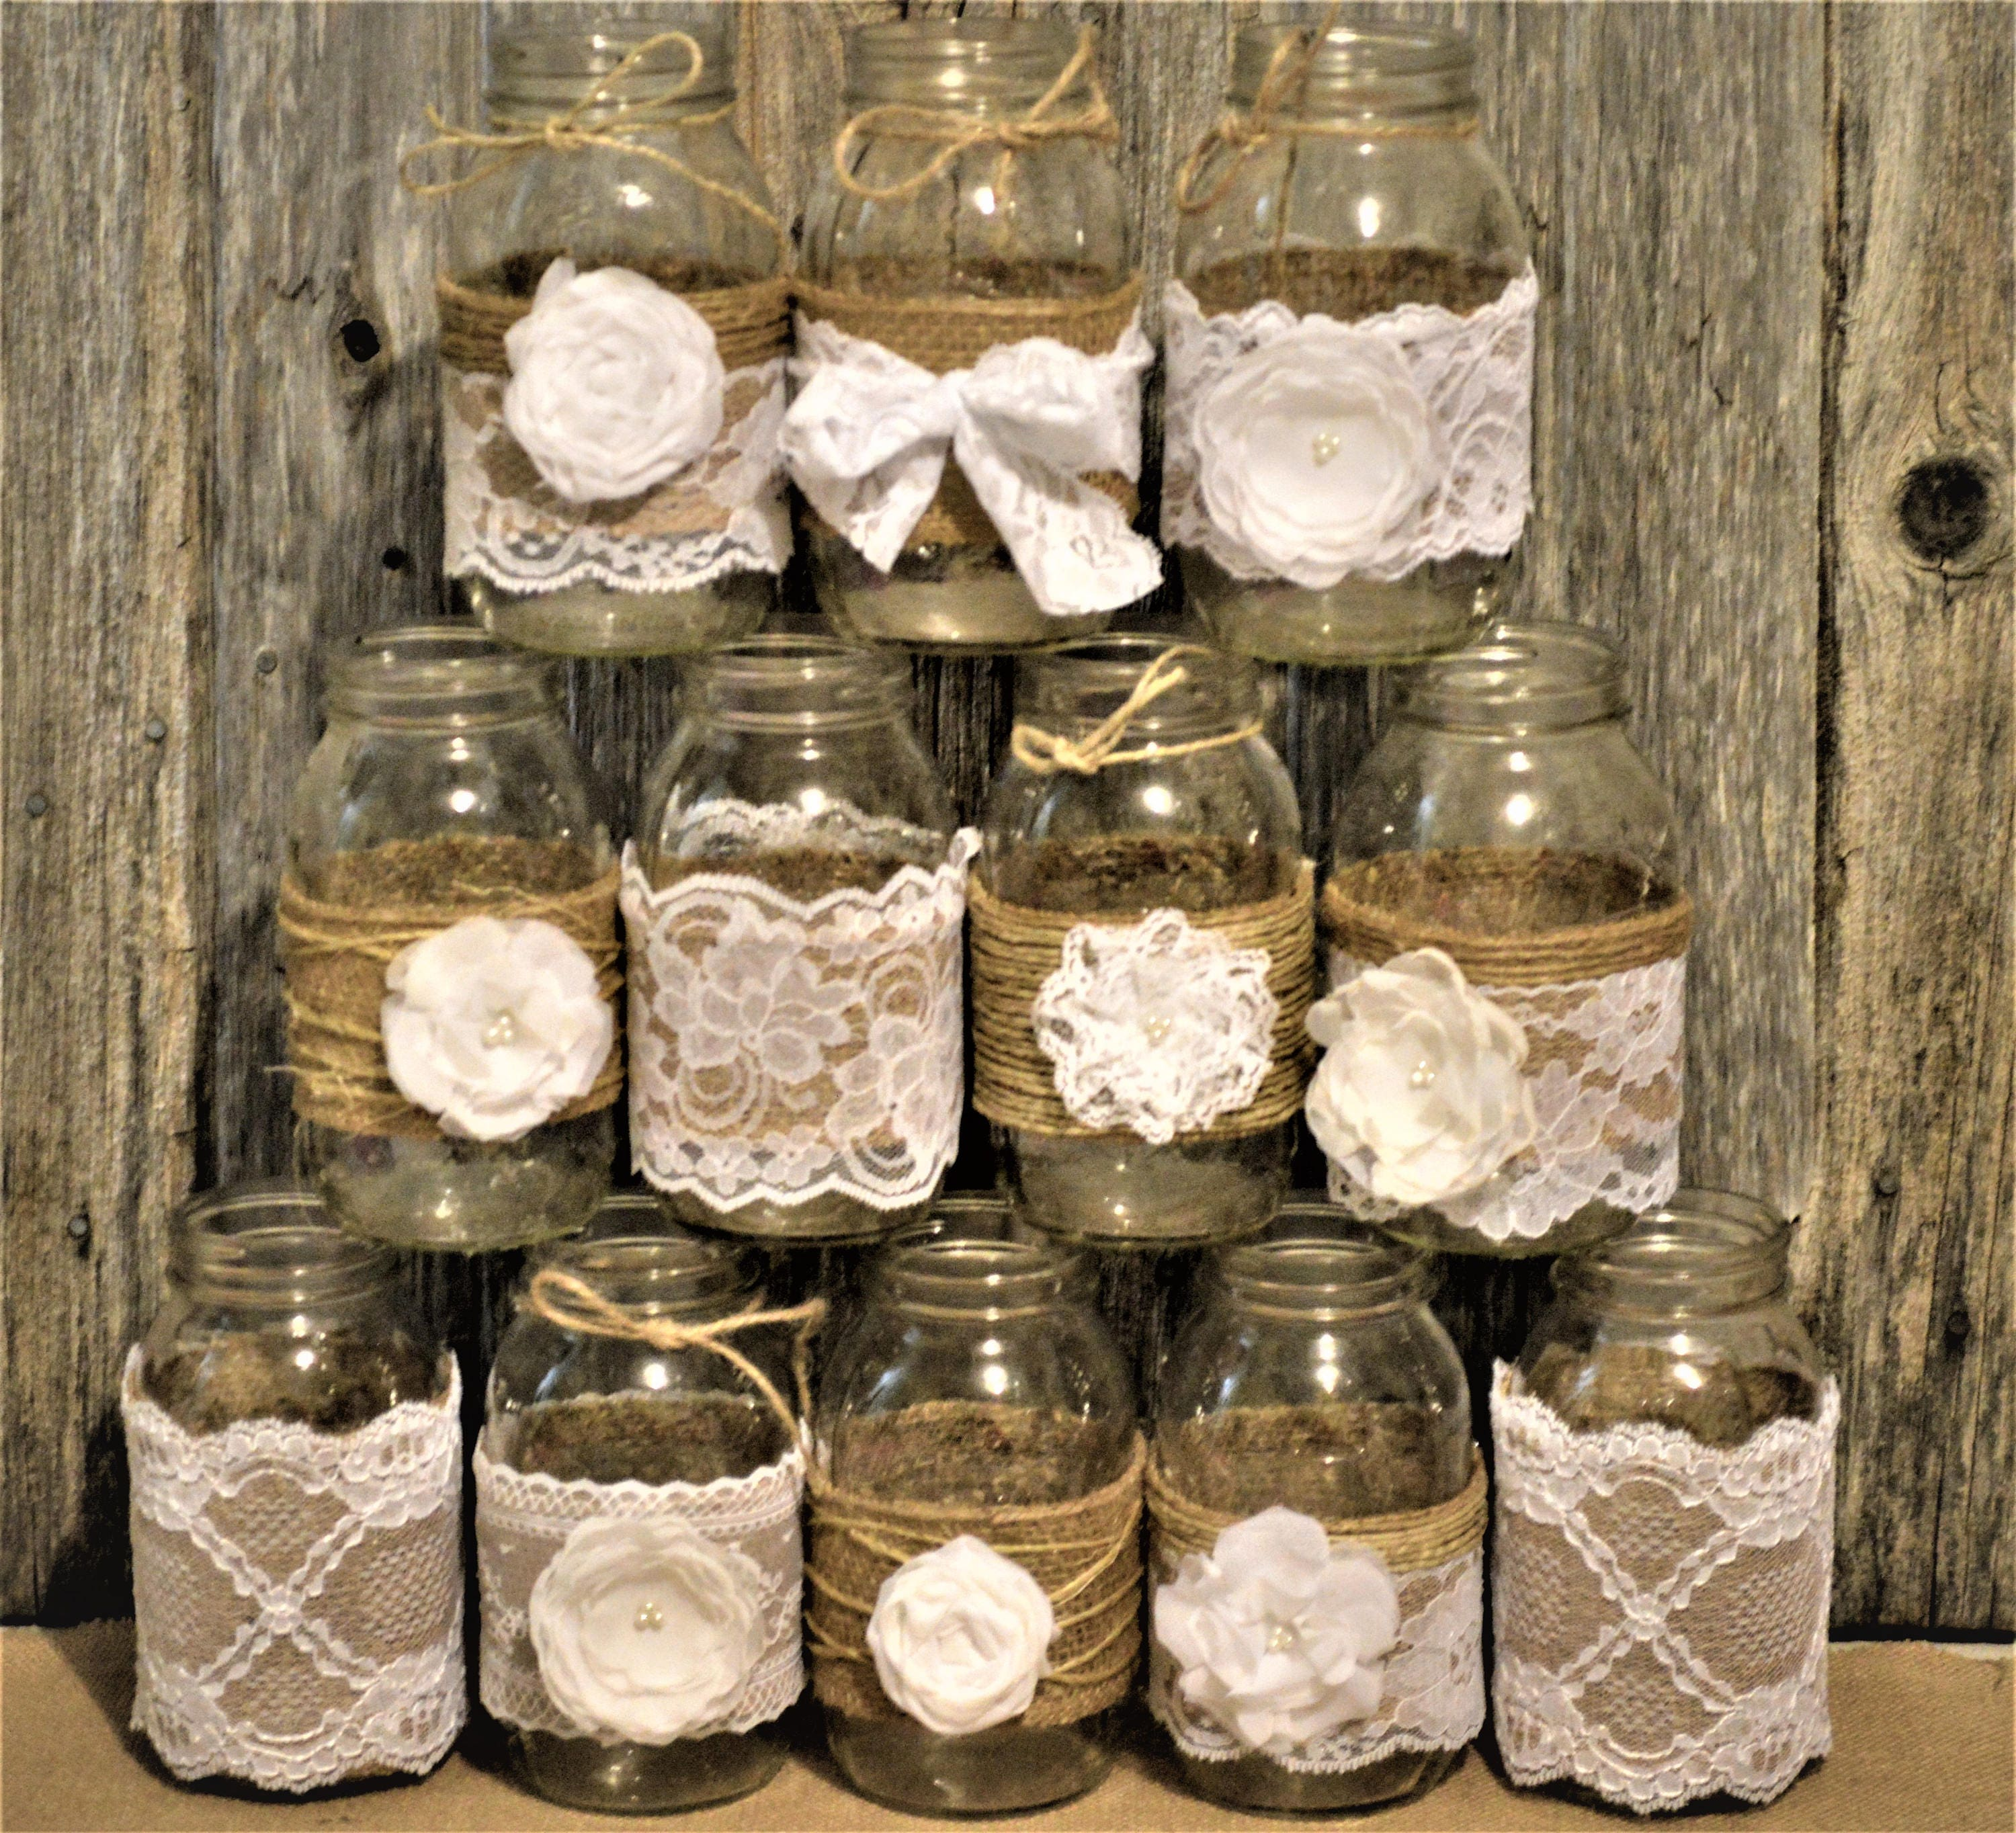 Mason Jar Wedding Centerpieces.Mason Jar Wedding Centerpiece Rustic Wedding Decorations Burlap Mason Jars White Wedding Wedding Decorations Baptism Decorations